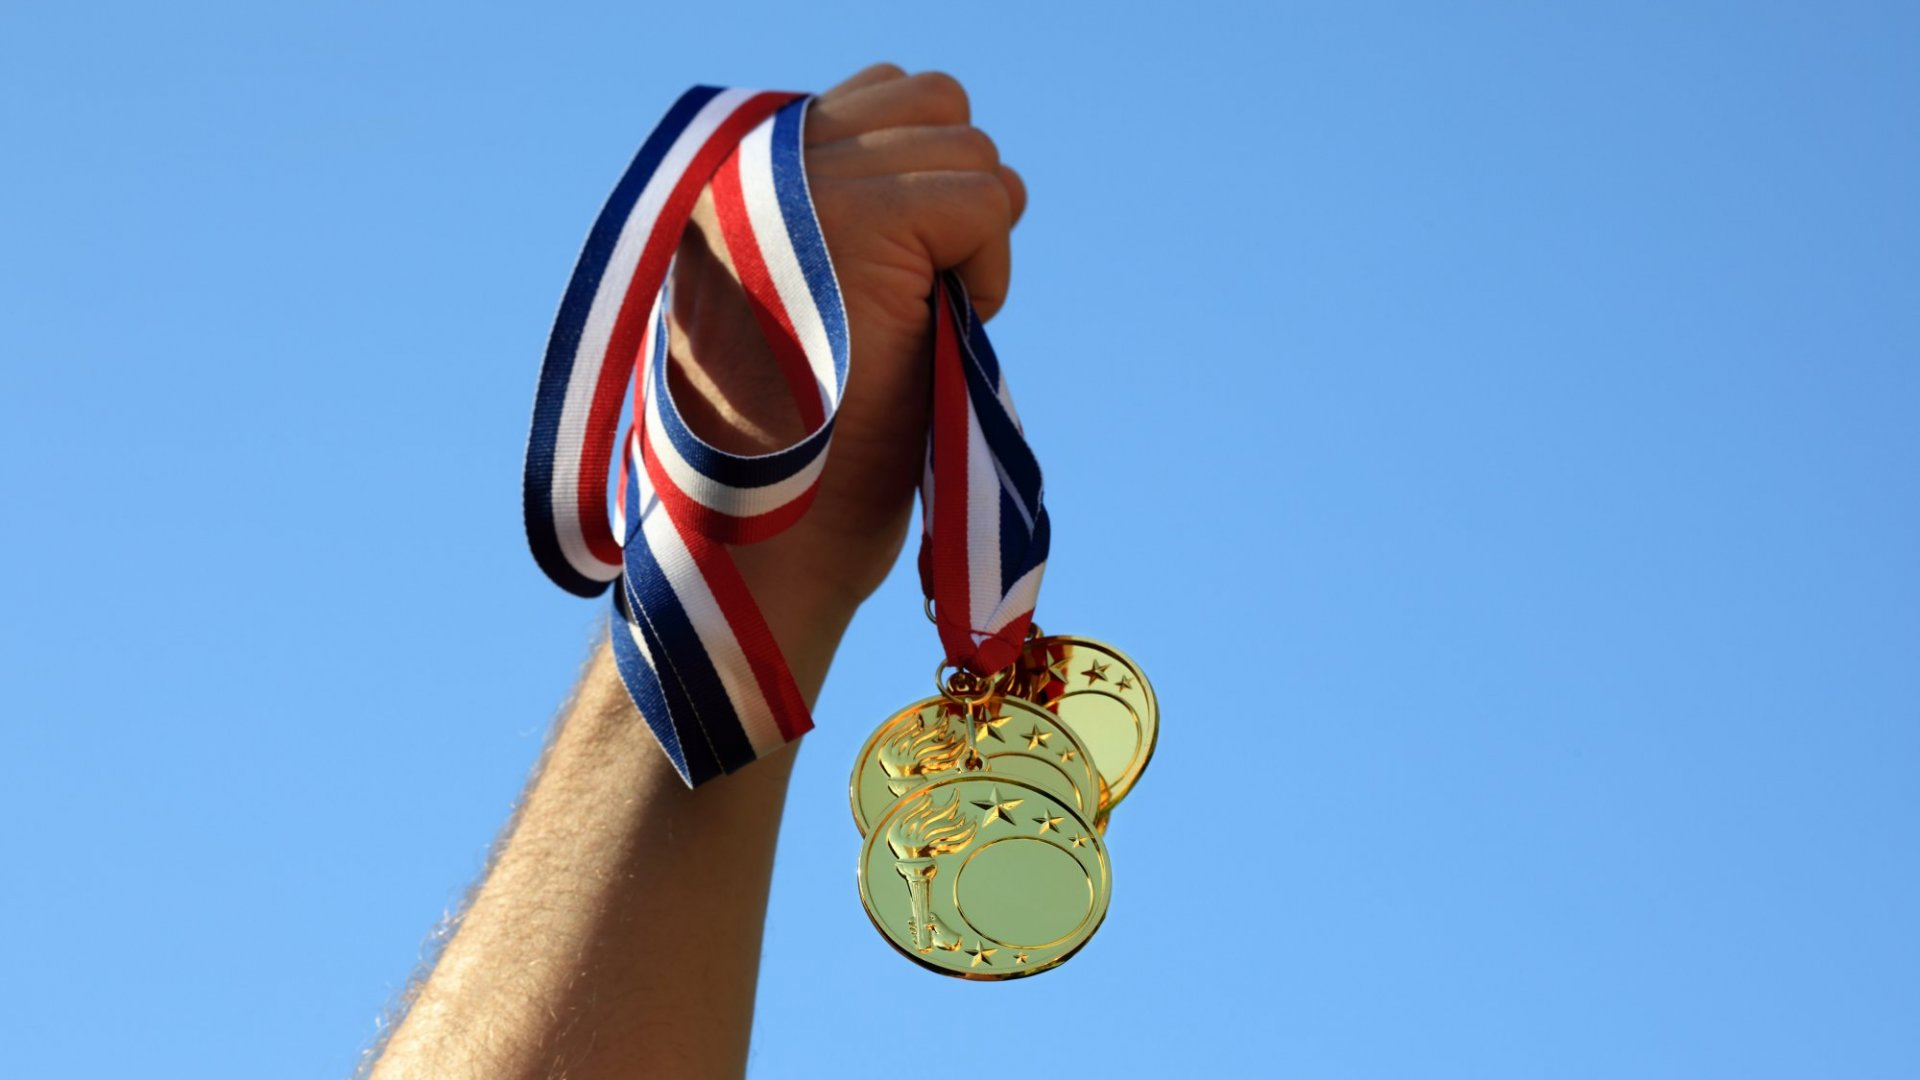 Everything Counts: Lessons for Startups from the Olympics